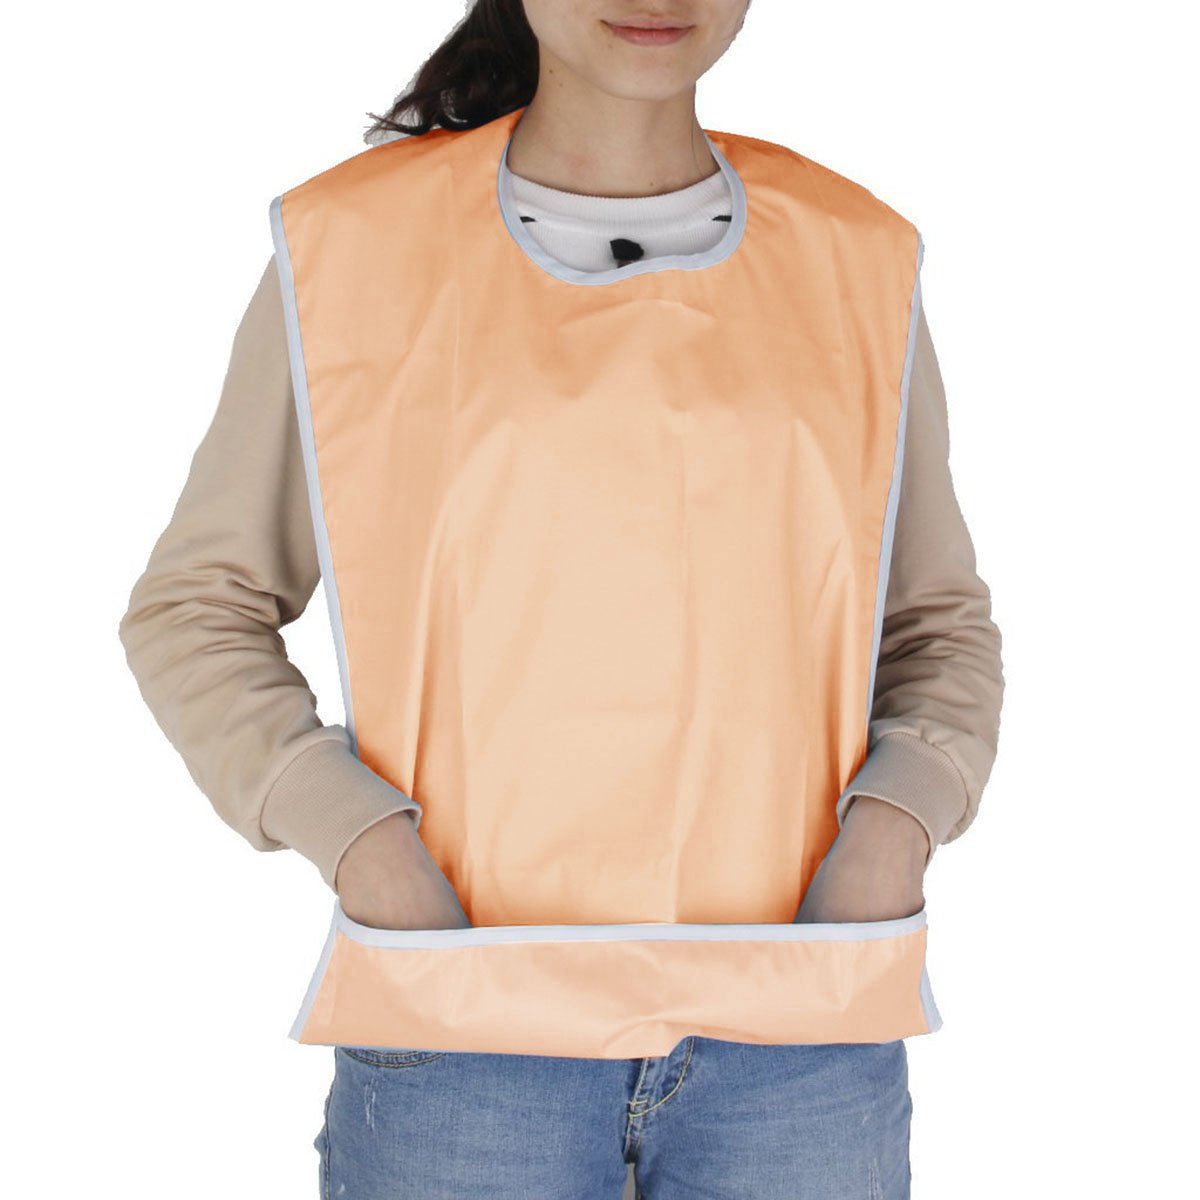 NUOLUX Bib for Elderly Waterproof Mealtime Bib Protector Aid Apron